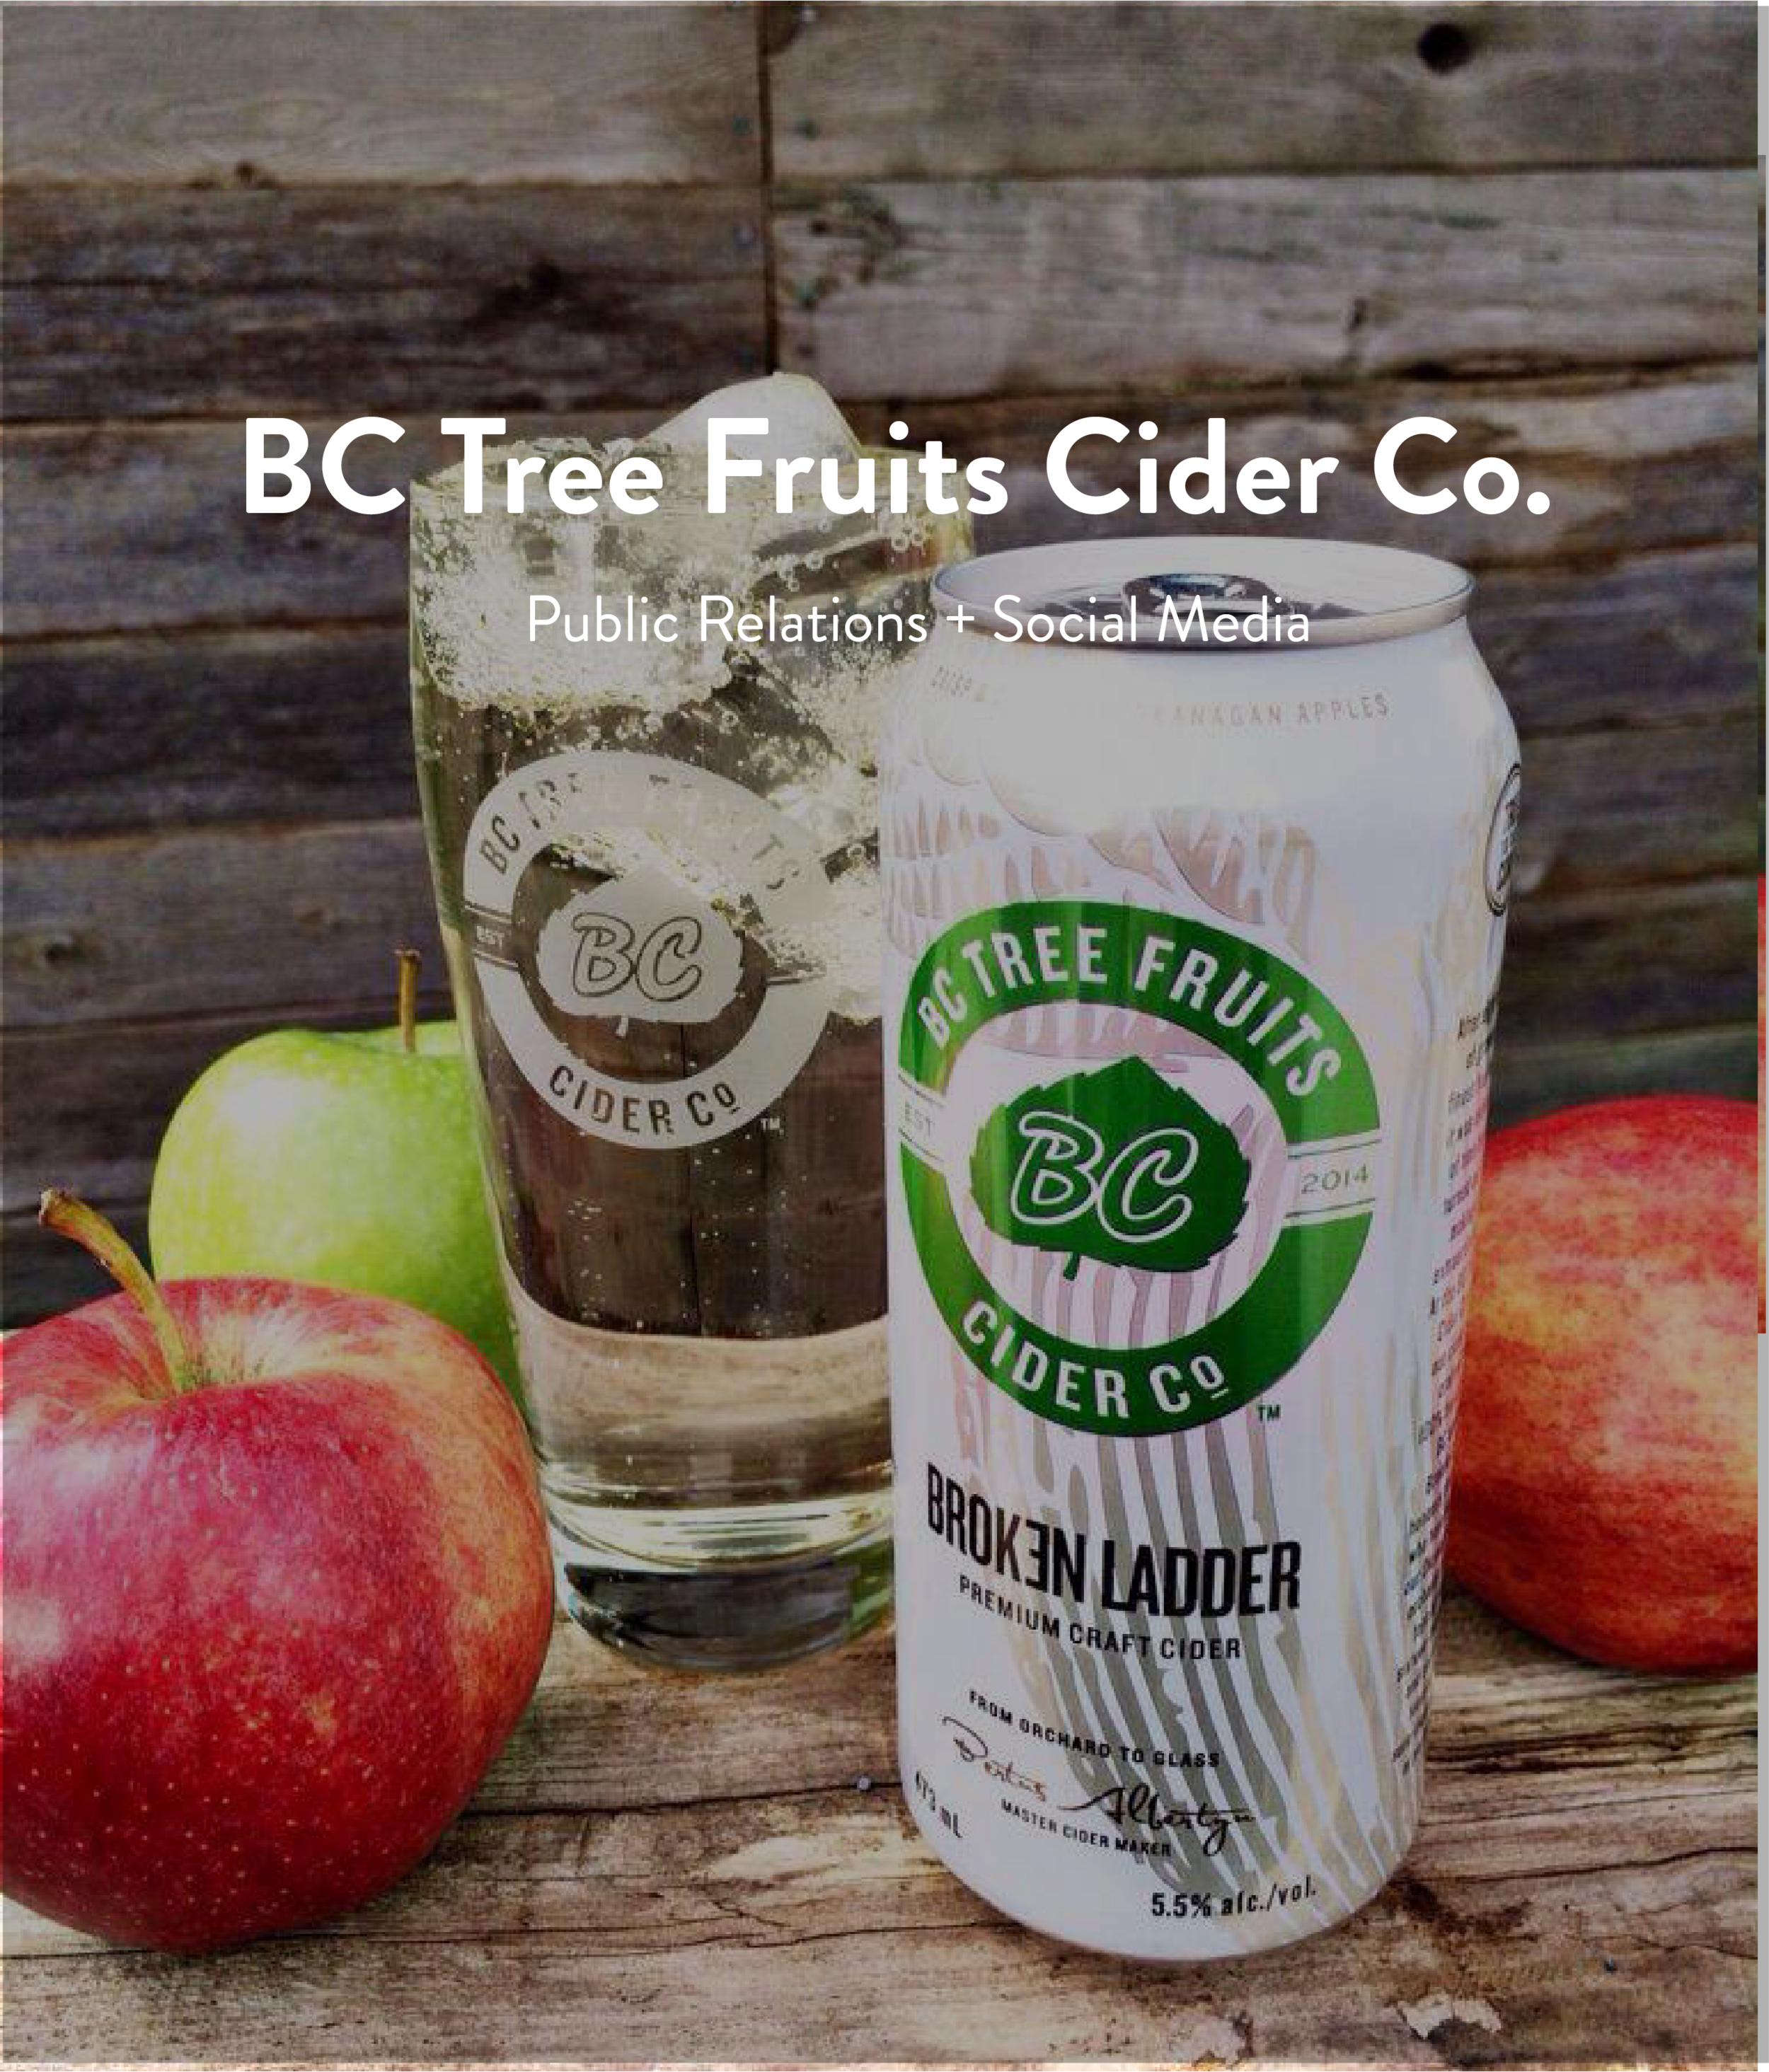 BC Tree Fruits Cider Co